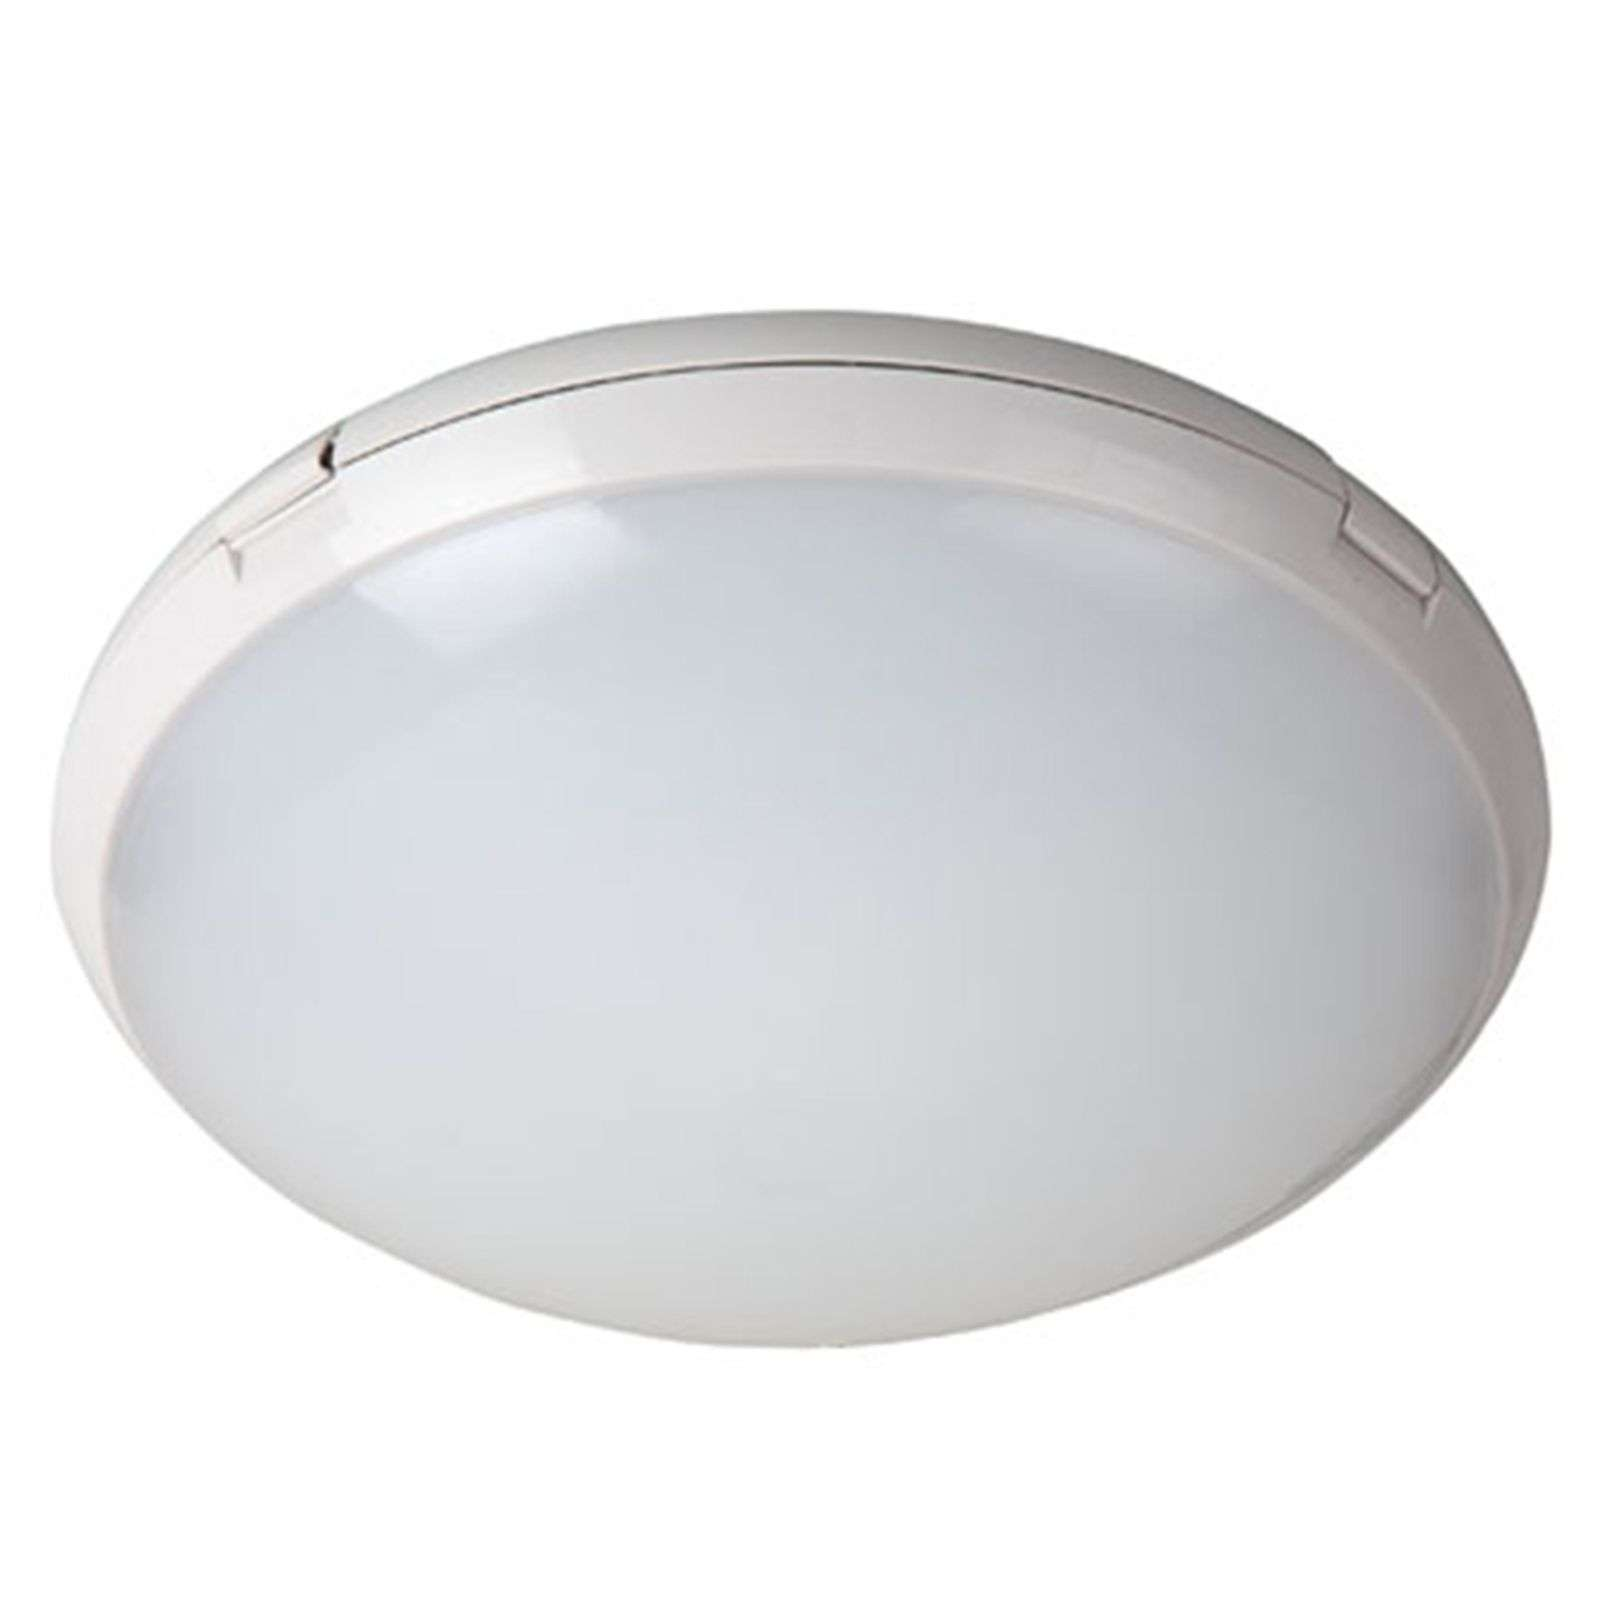 Aquaround - lampada LED da soffitto grado IP65